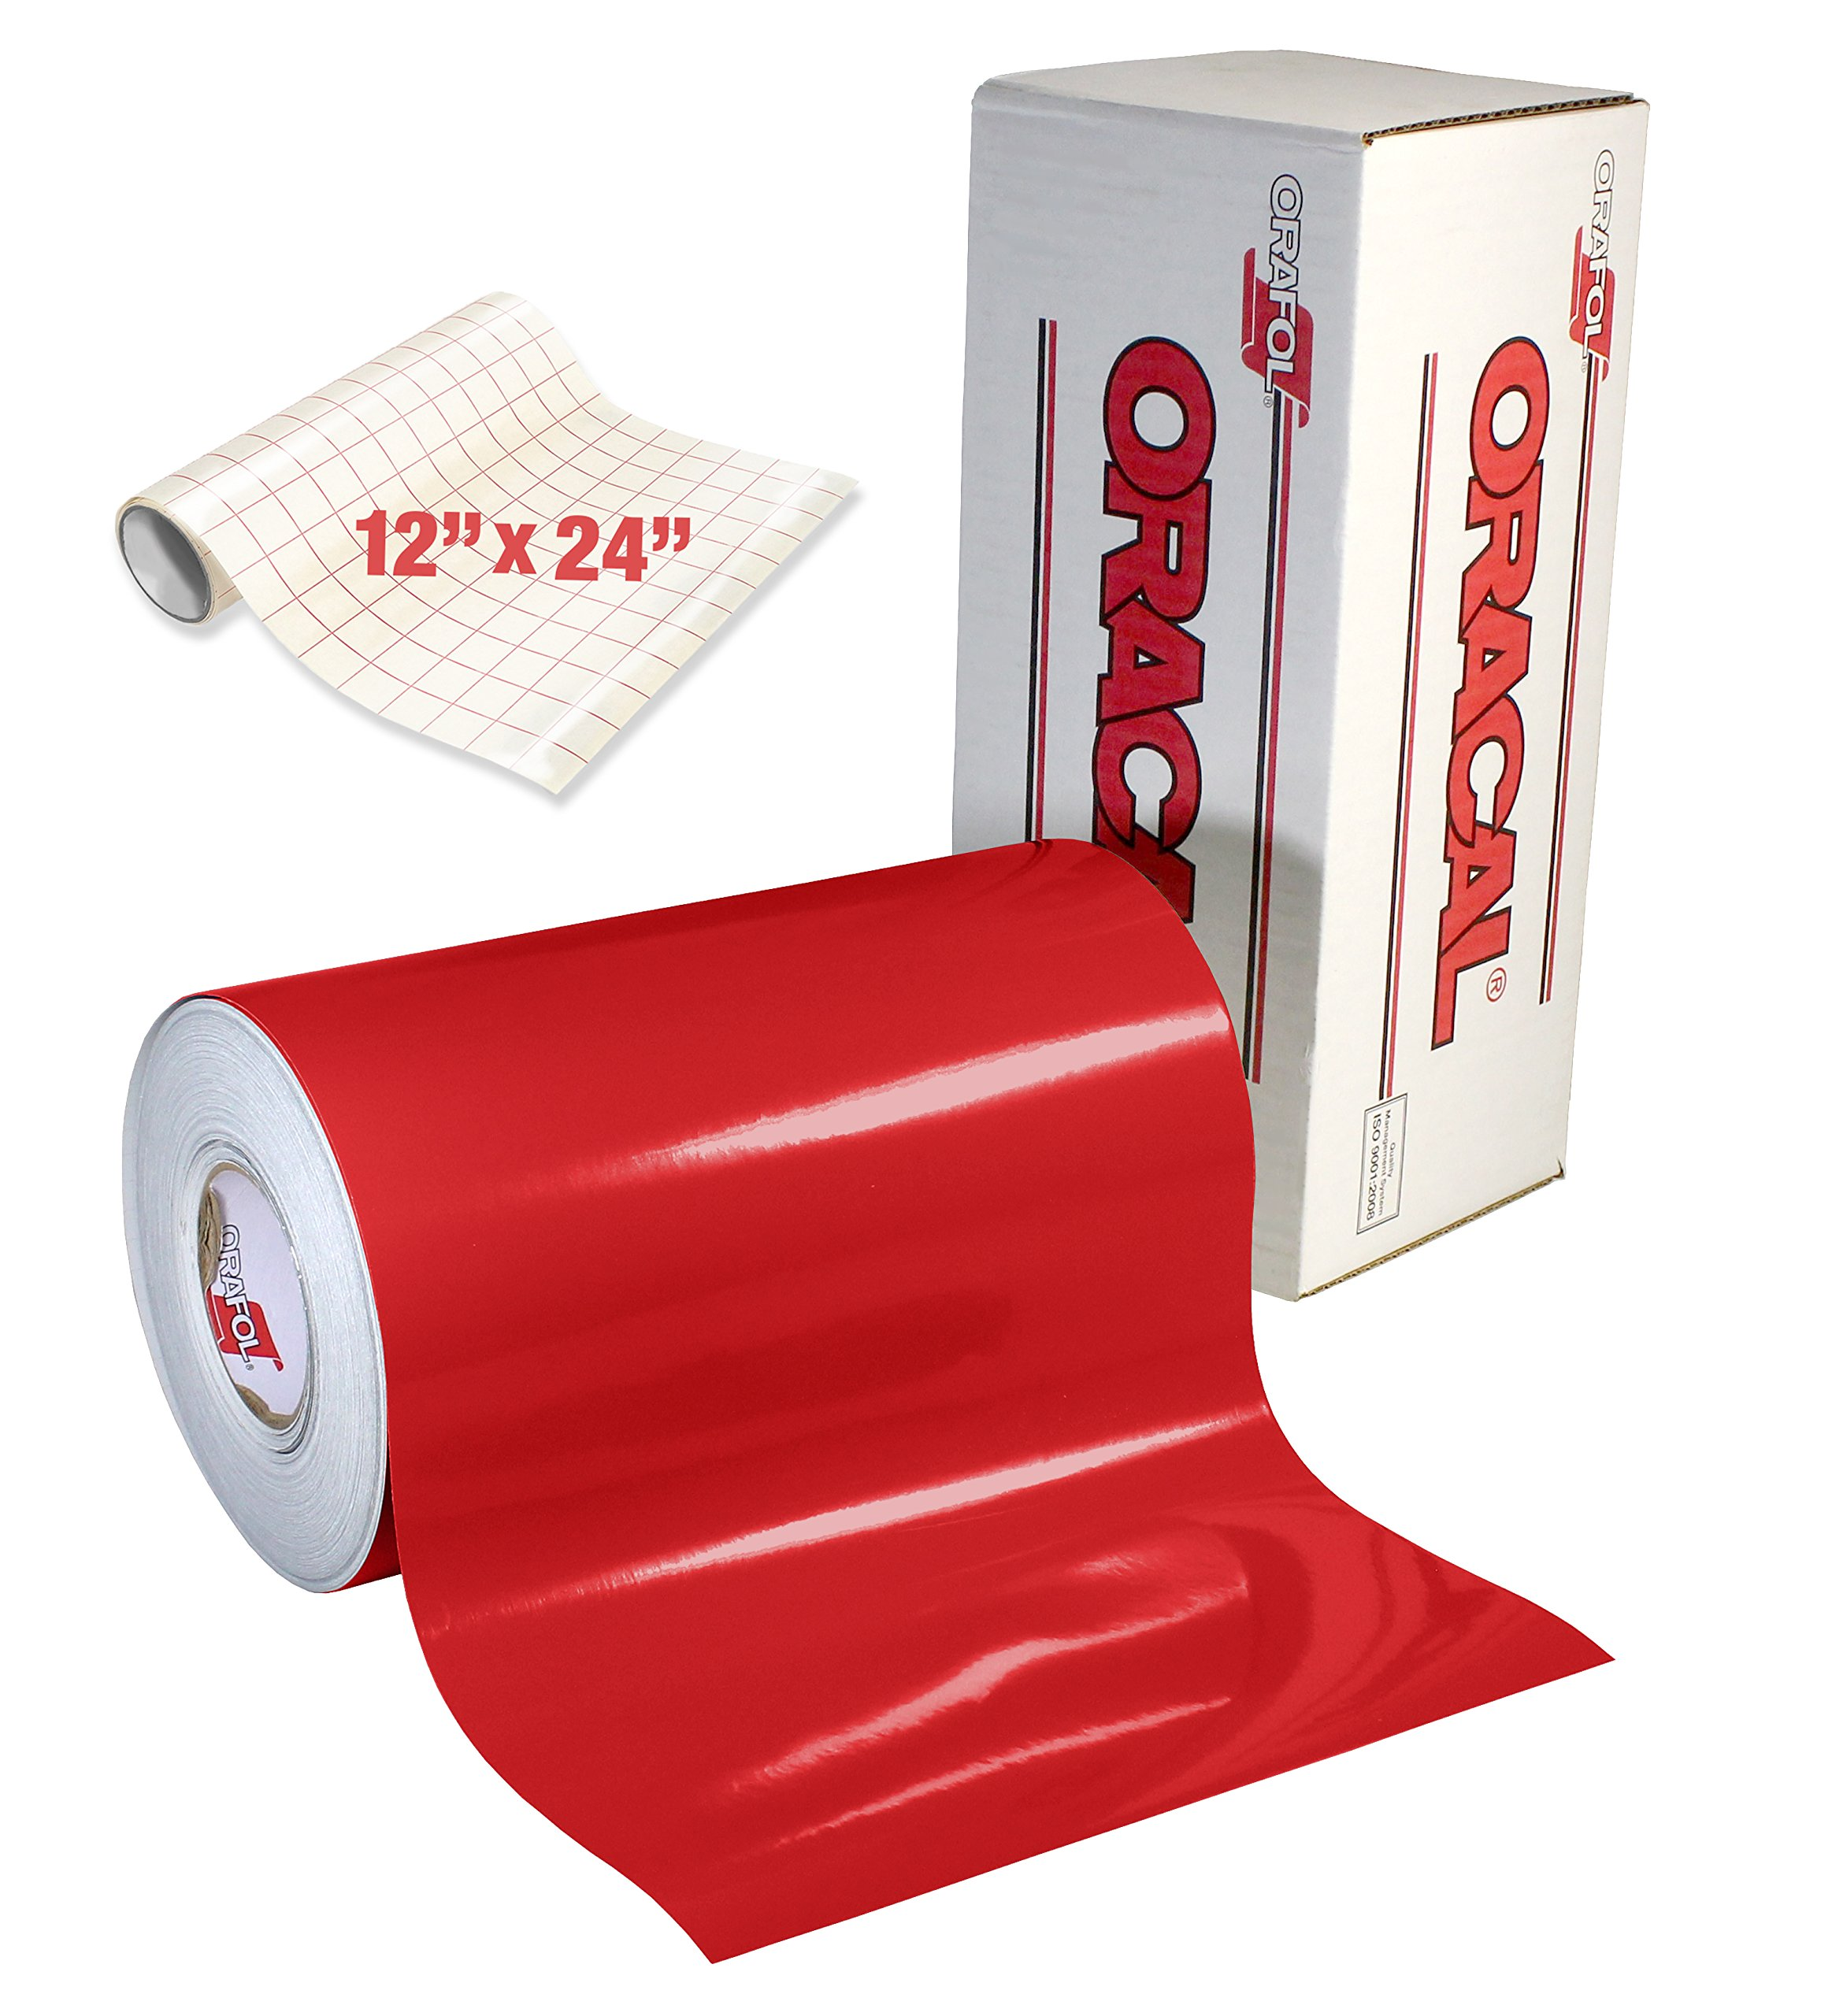 ORACAL Gloss Red Adhesive Craft Vinyl for Cameo, Cricut & Silhouette Including Free Roll of Clear Transfer Paper (50ft x 12'')